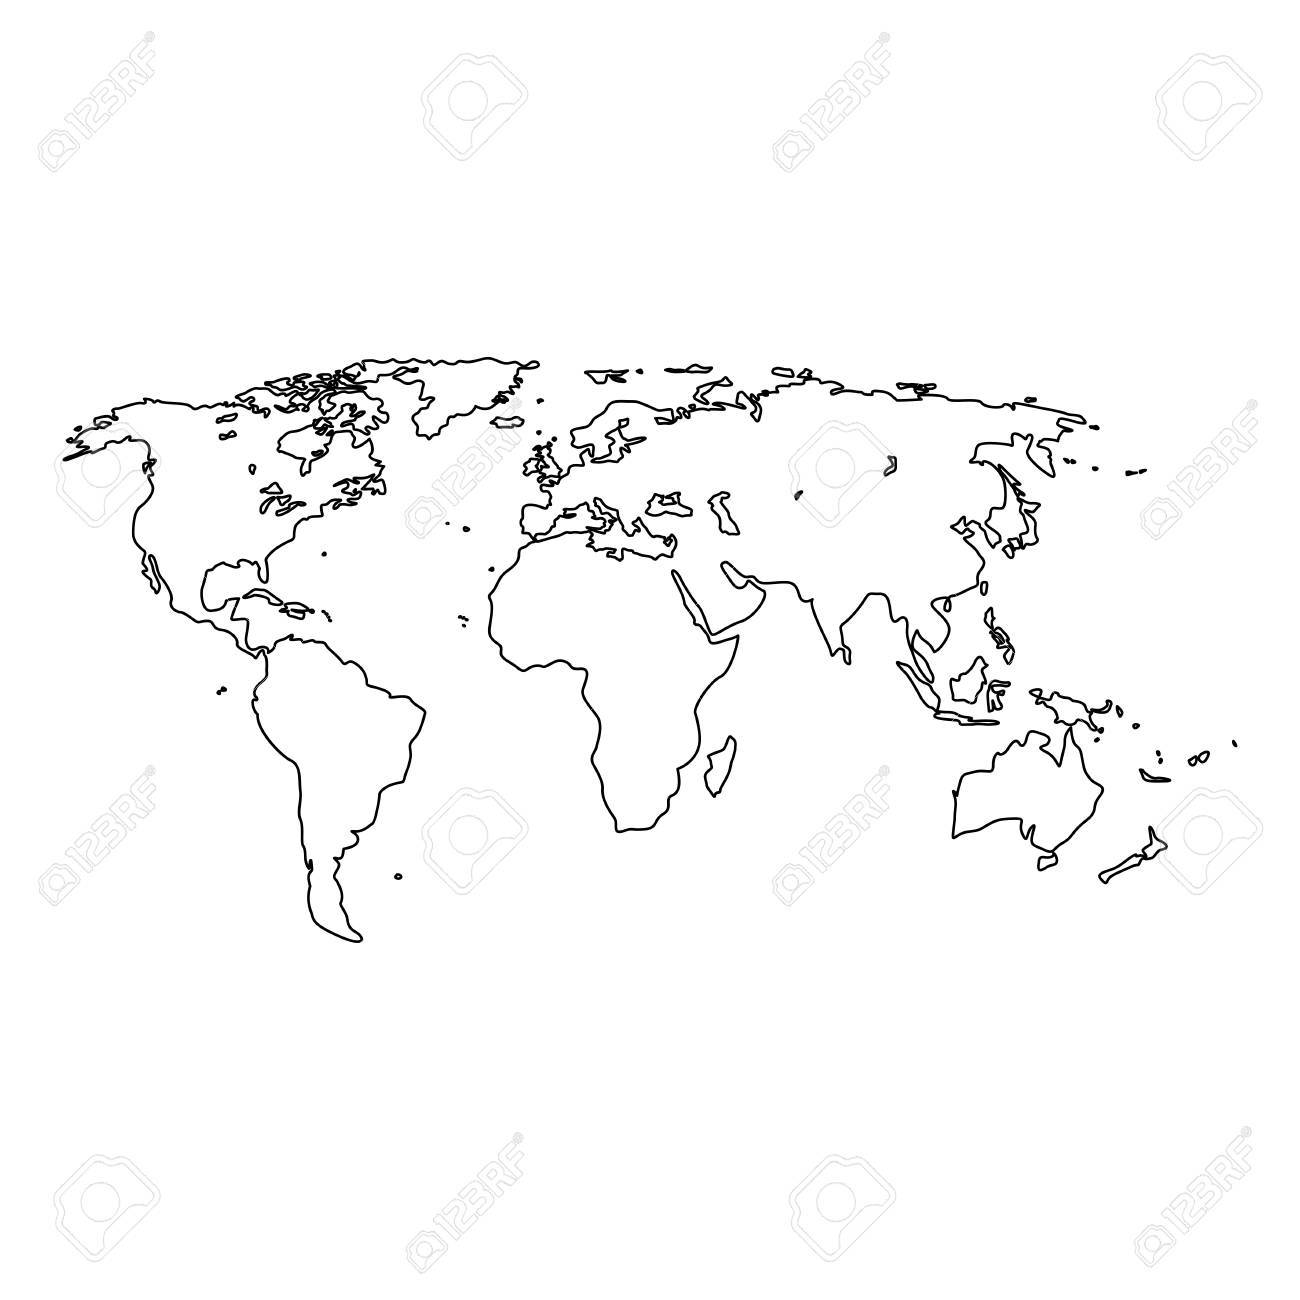 Cartina Del Mondo On Line.World Map It Is Black Icon Simple Style Royalty Free Cliparts Vectors And Stock Illustration Image 87339778